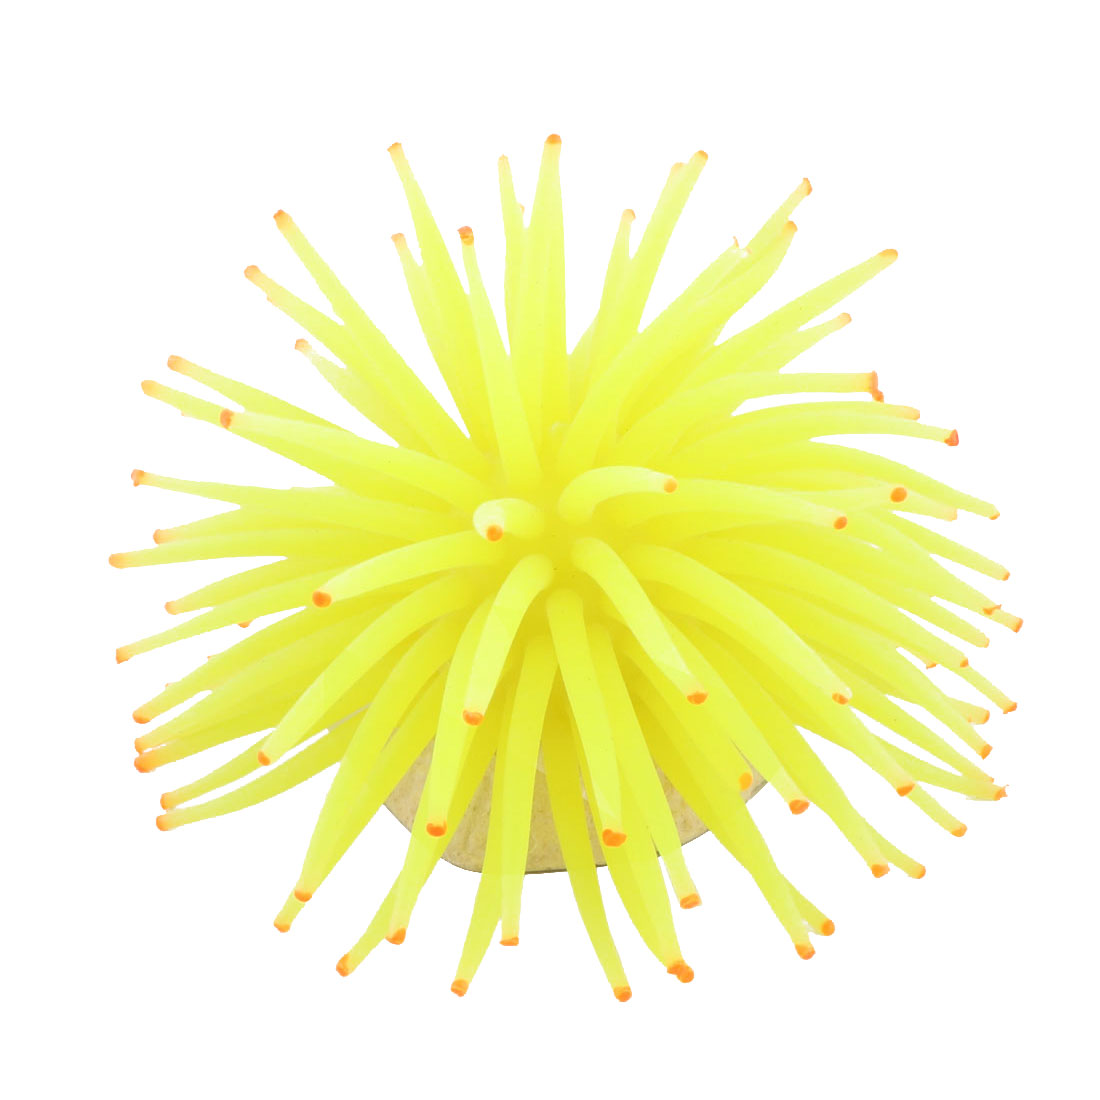 Bright Yellow Silicone Sea Anemone Vivid Decor for Aquarium Tank